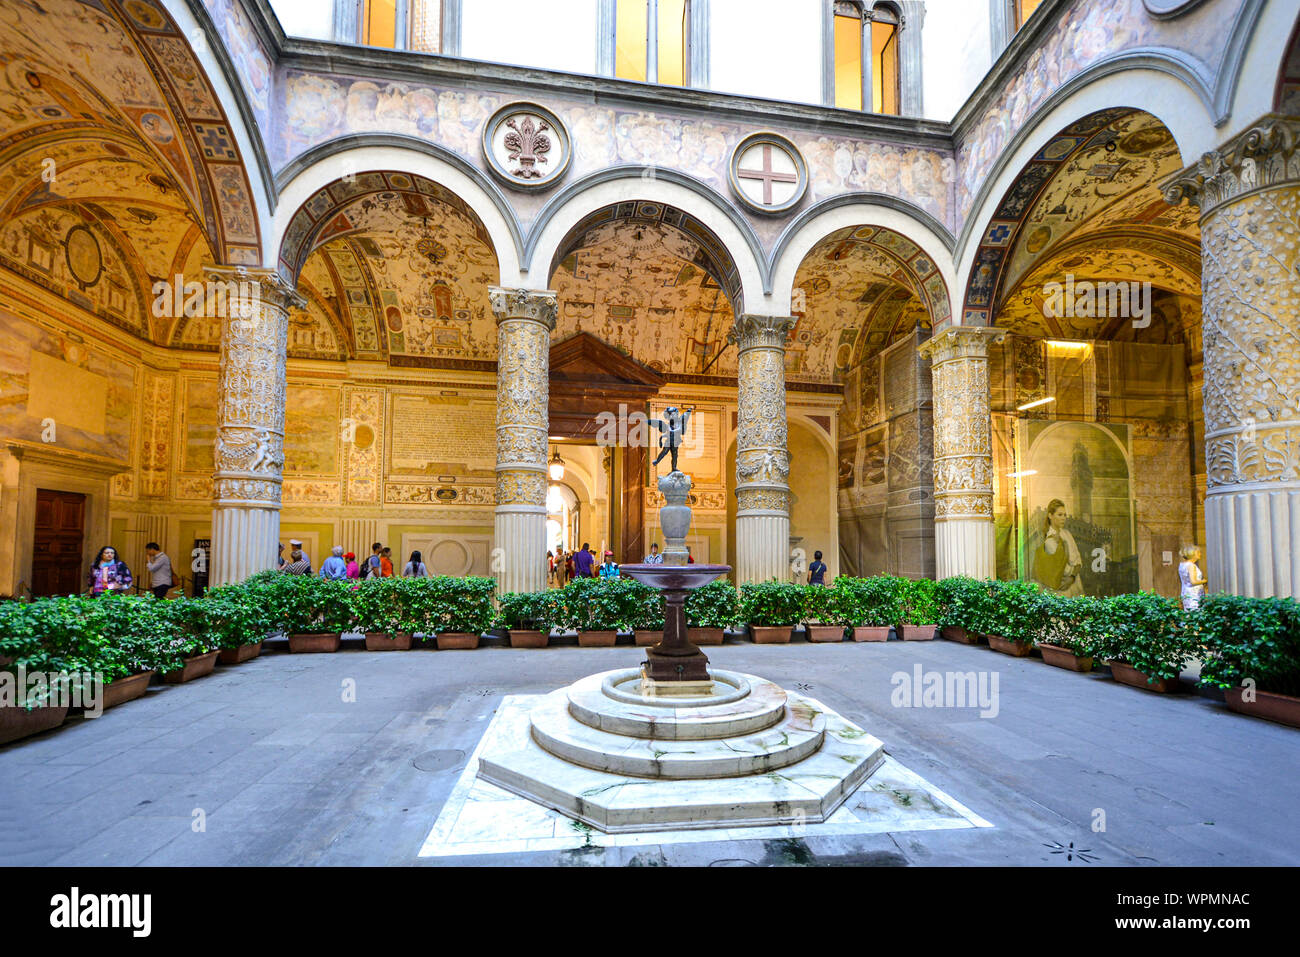 tourists visit the first courtyard of the Palazzo Vecchio in Florence Italy with a small fountain with statue, frescoes on the wall and vaulted column Stock Photo